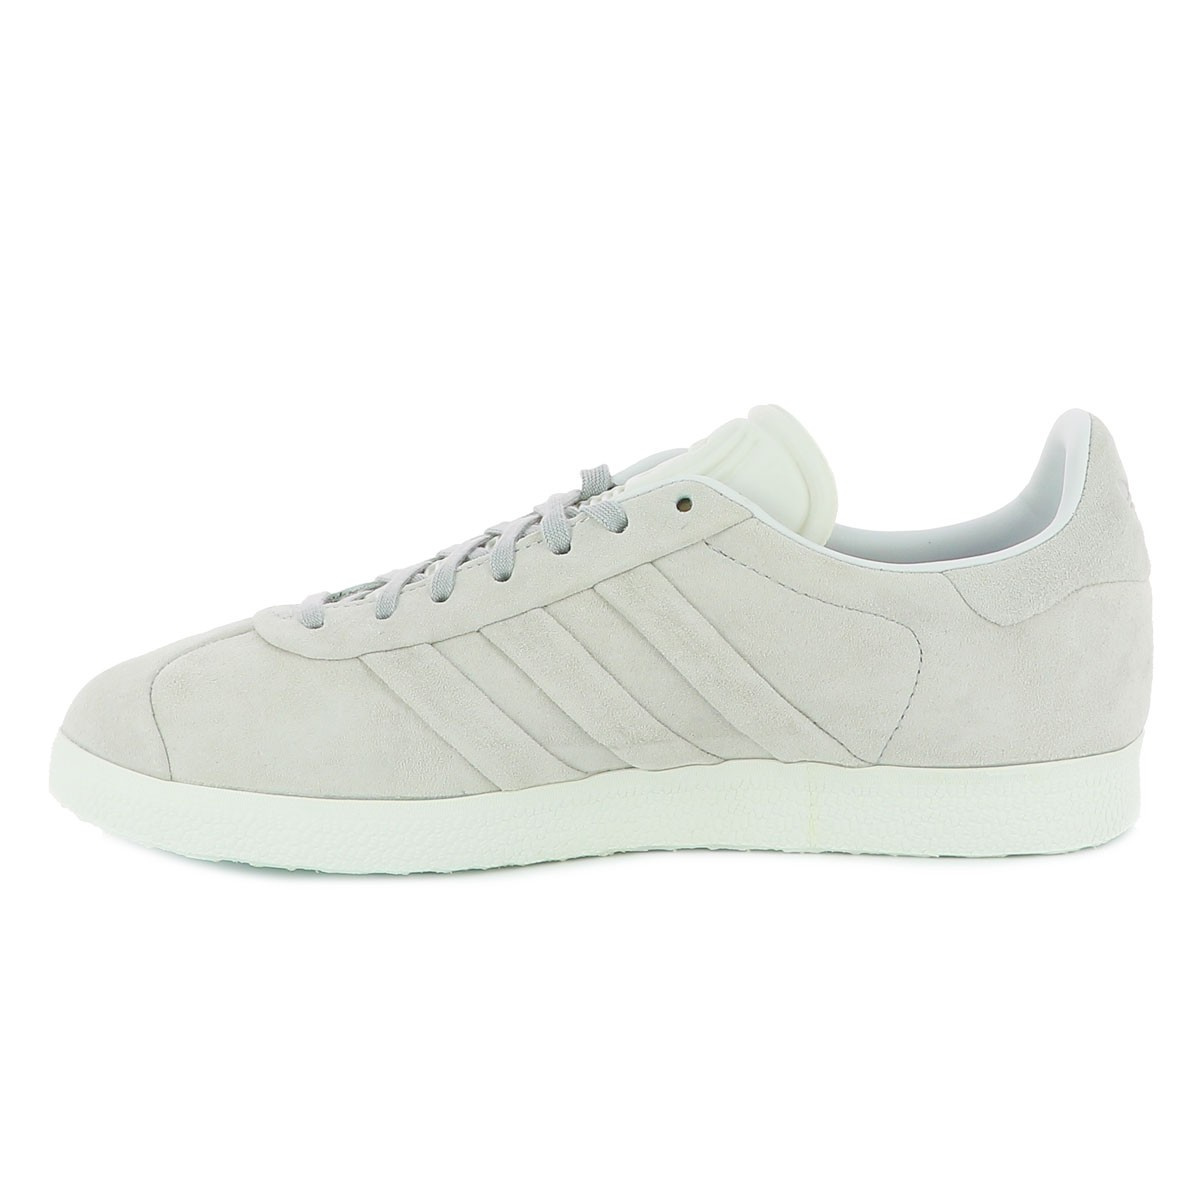 Adidas Gris Stitch Femme Gazelle Baskets Turn Originals And uTlFK1c5J3